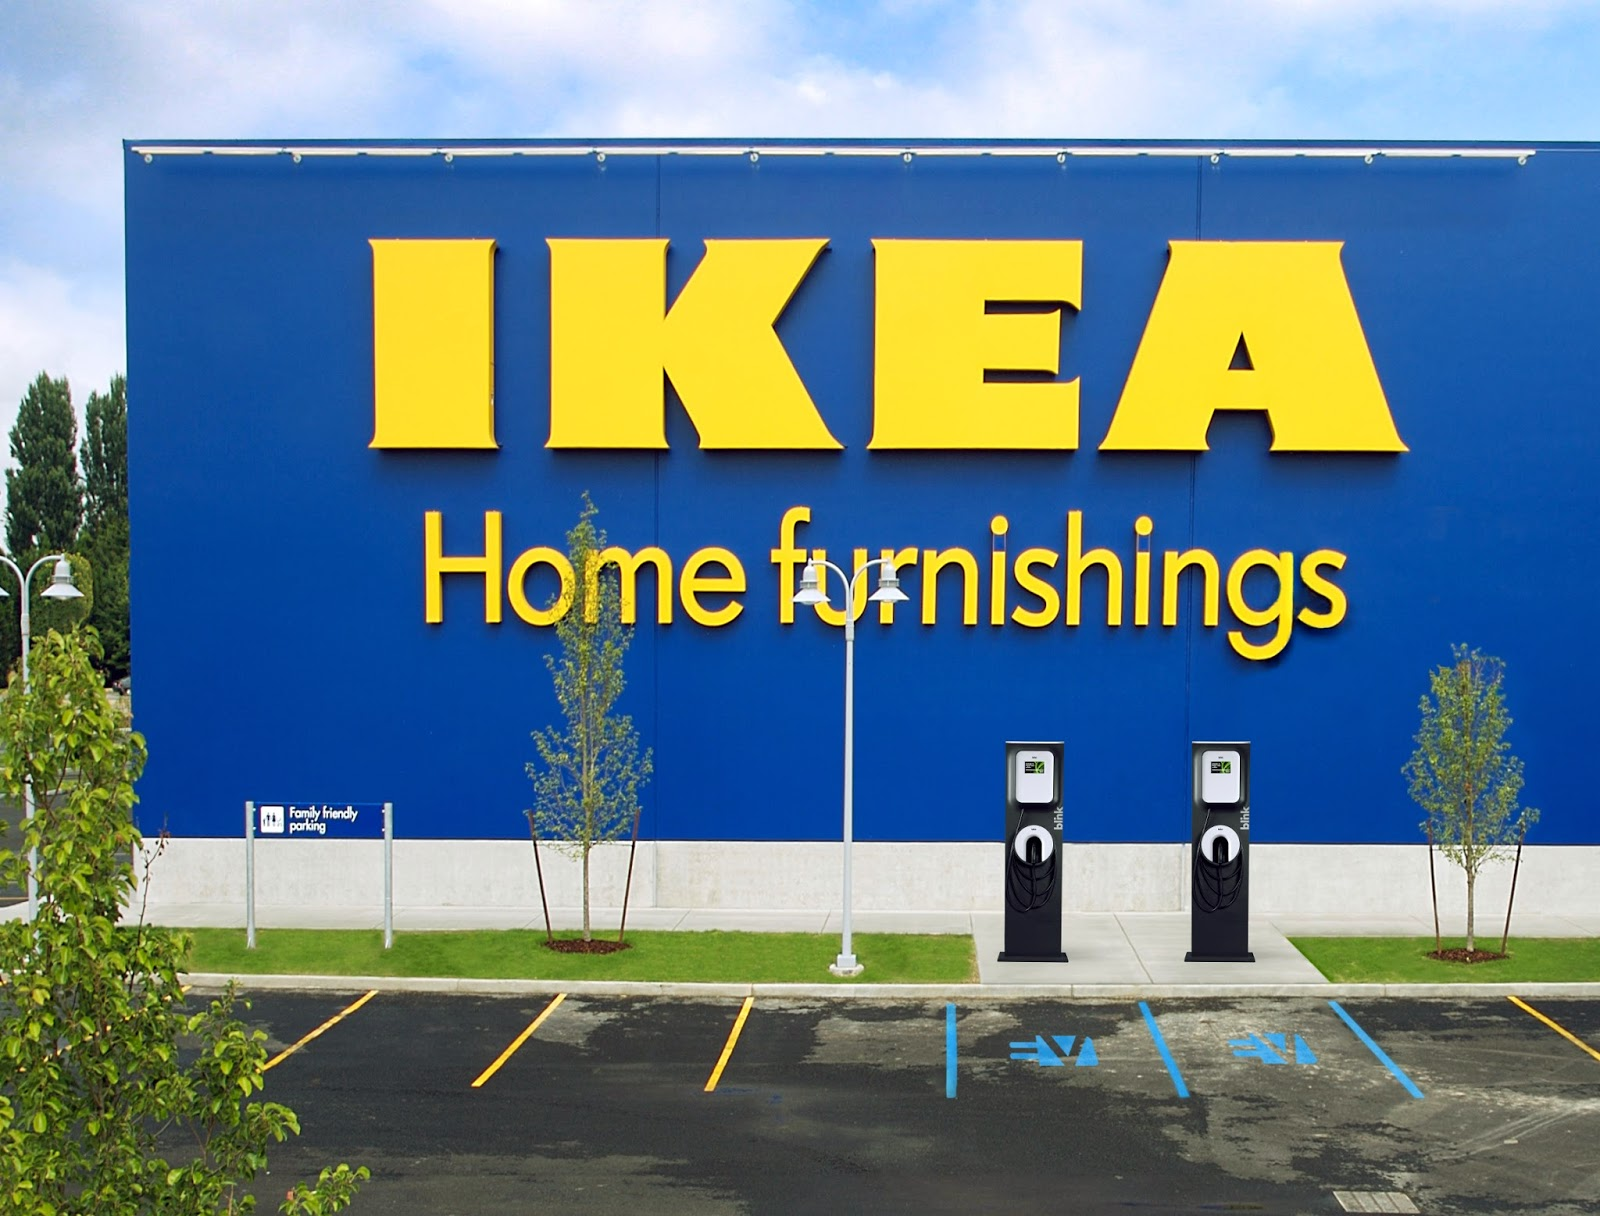 IKEA Business Strategy and Competitive Advantage